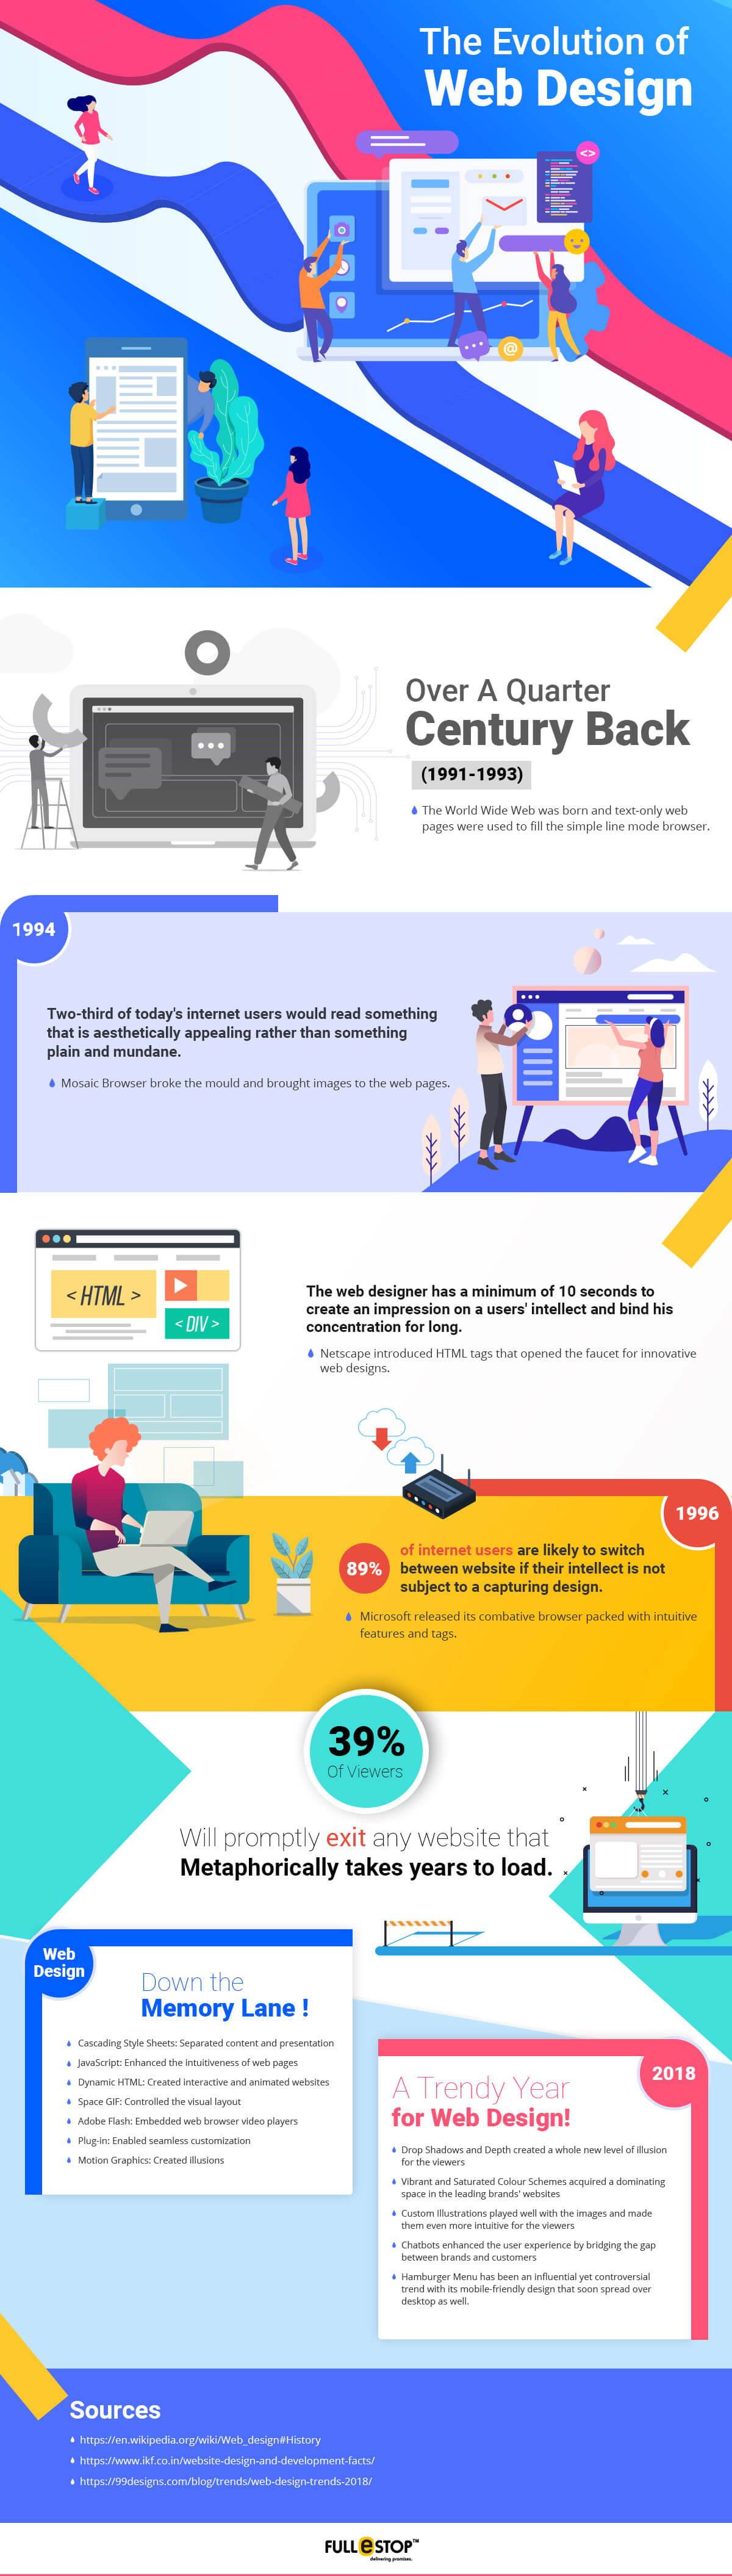 Evolution-of-web-design-infographic-plaza